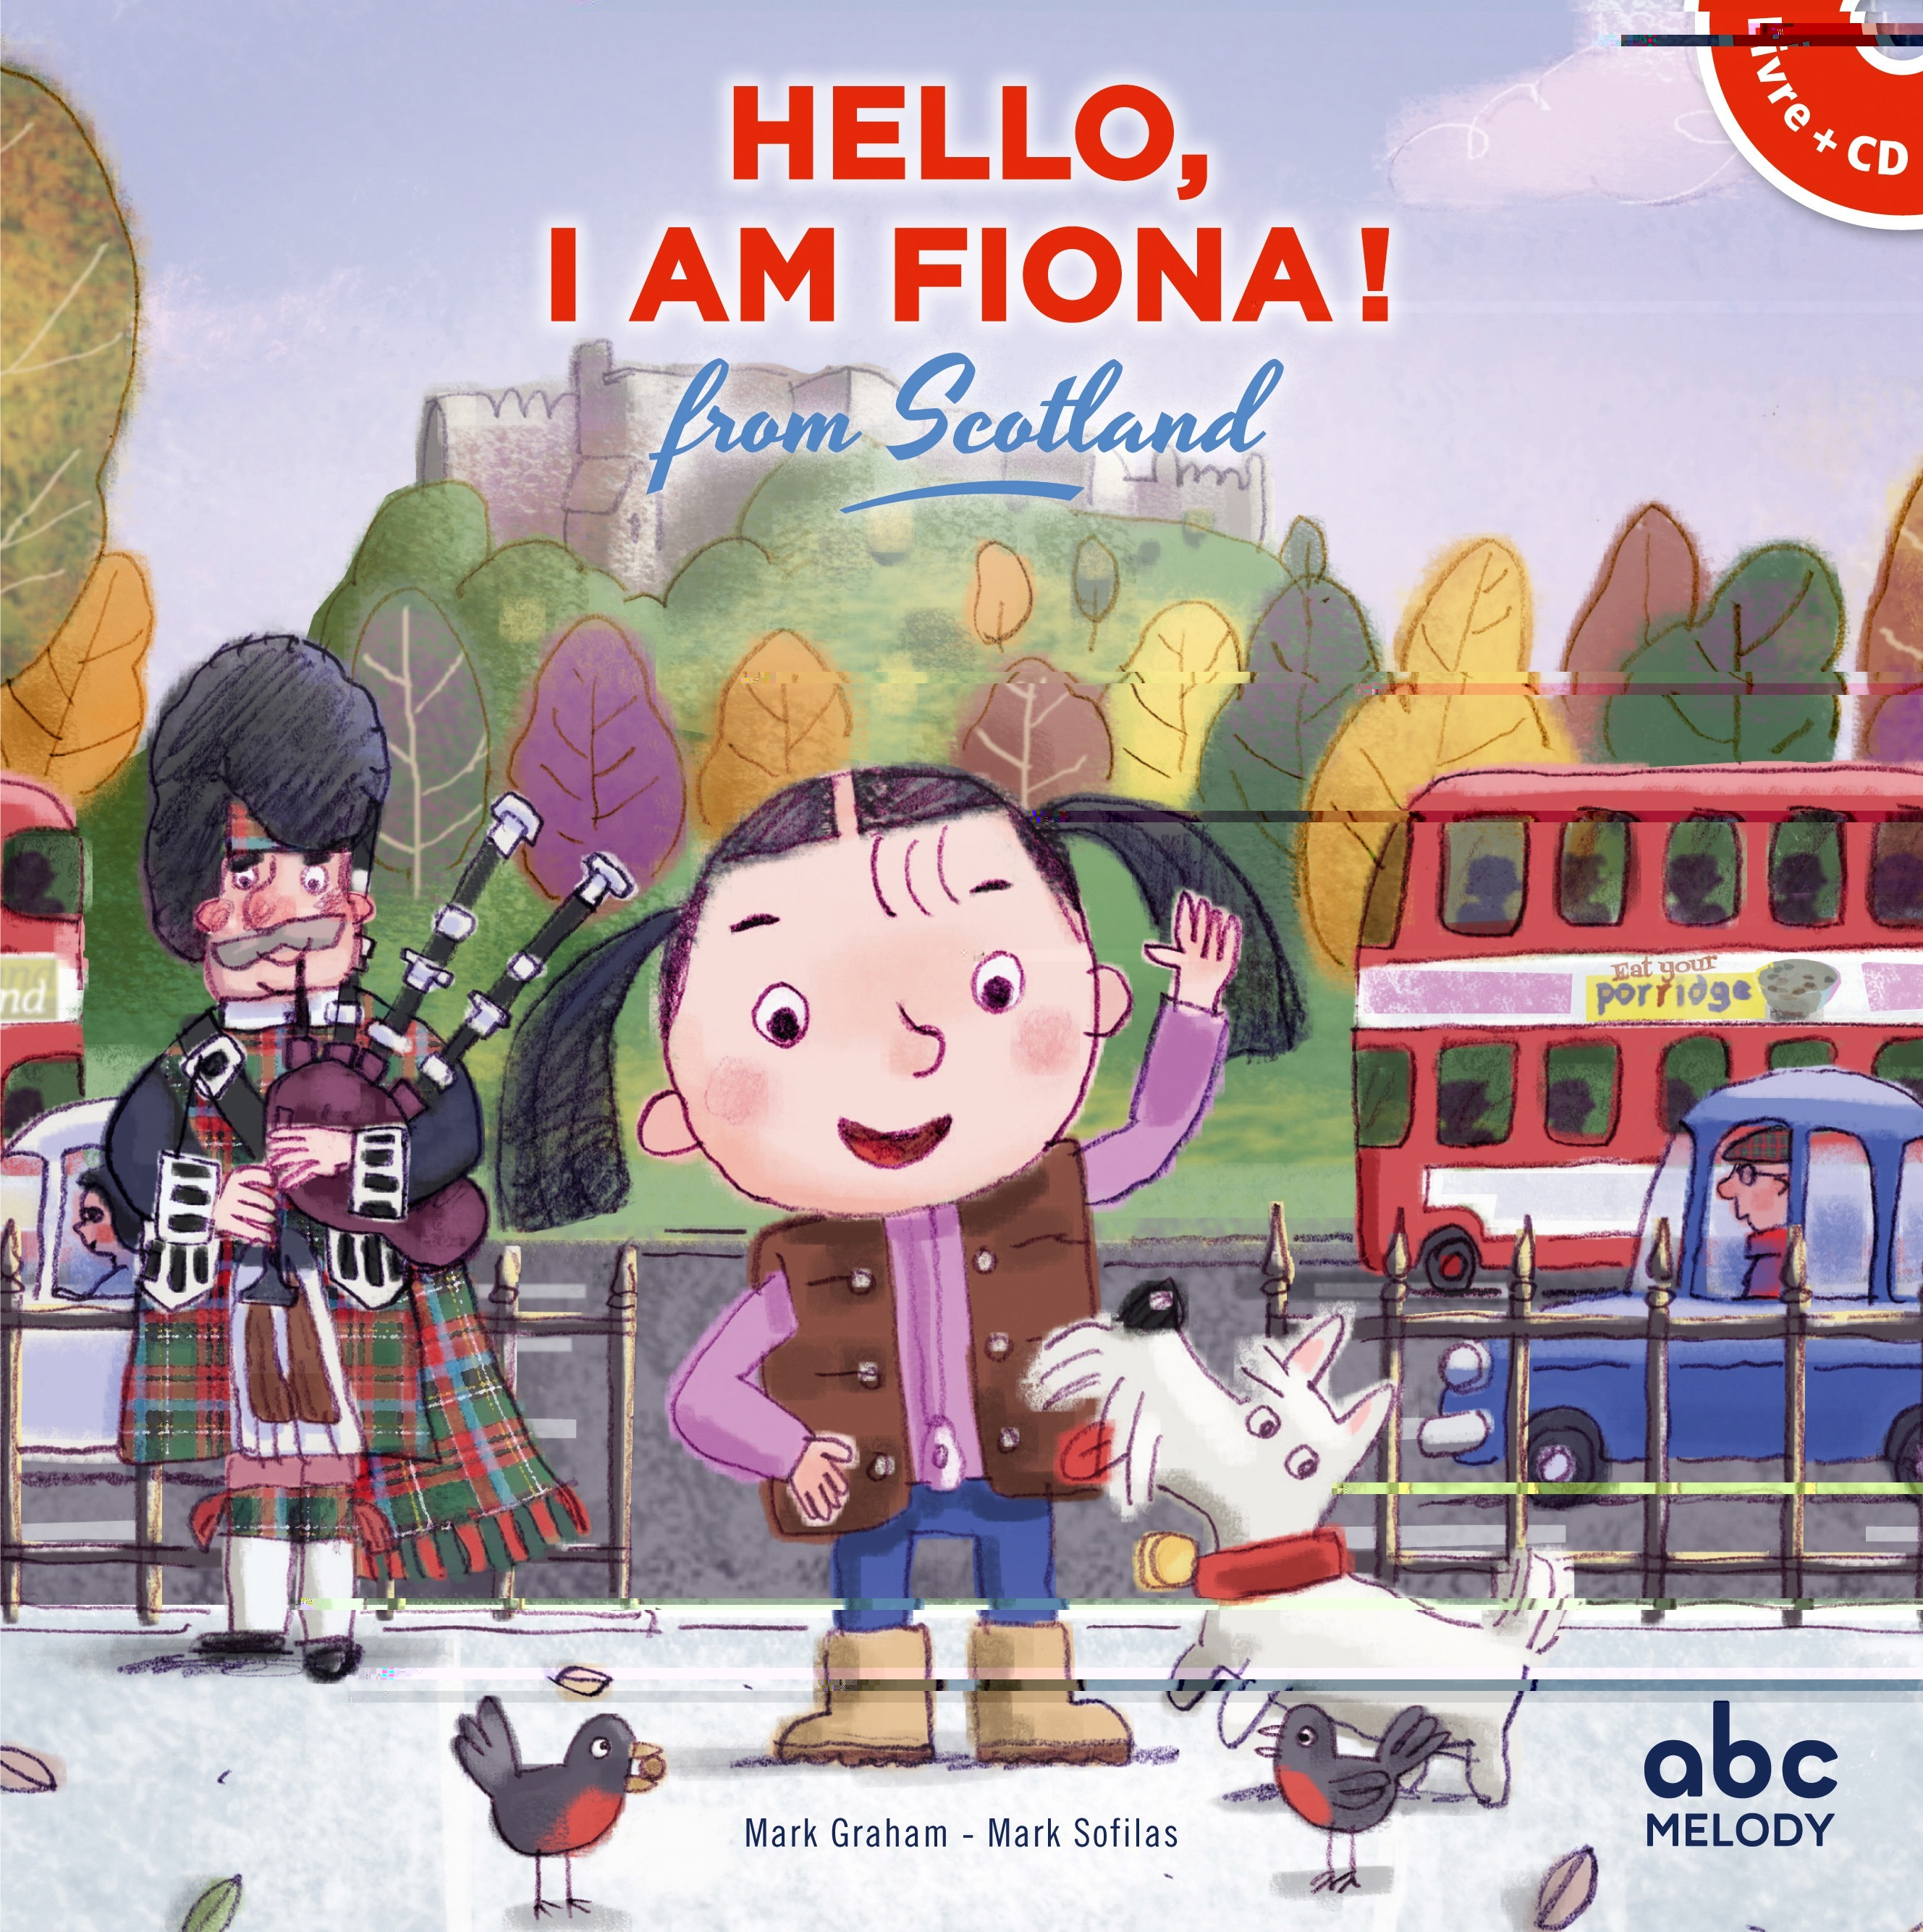 HELLO, I AM FIONA FROM SCOTLAND - LIVRE-CD - NOUVELLE EDITION